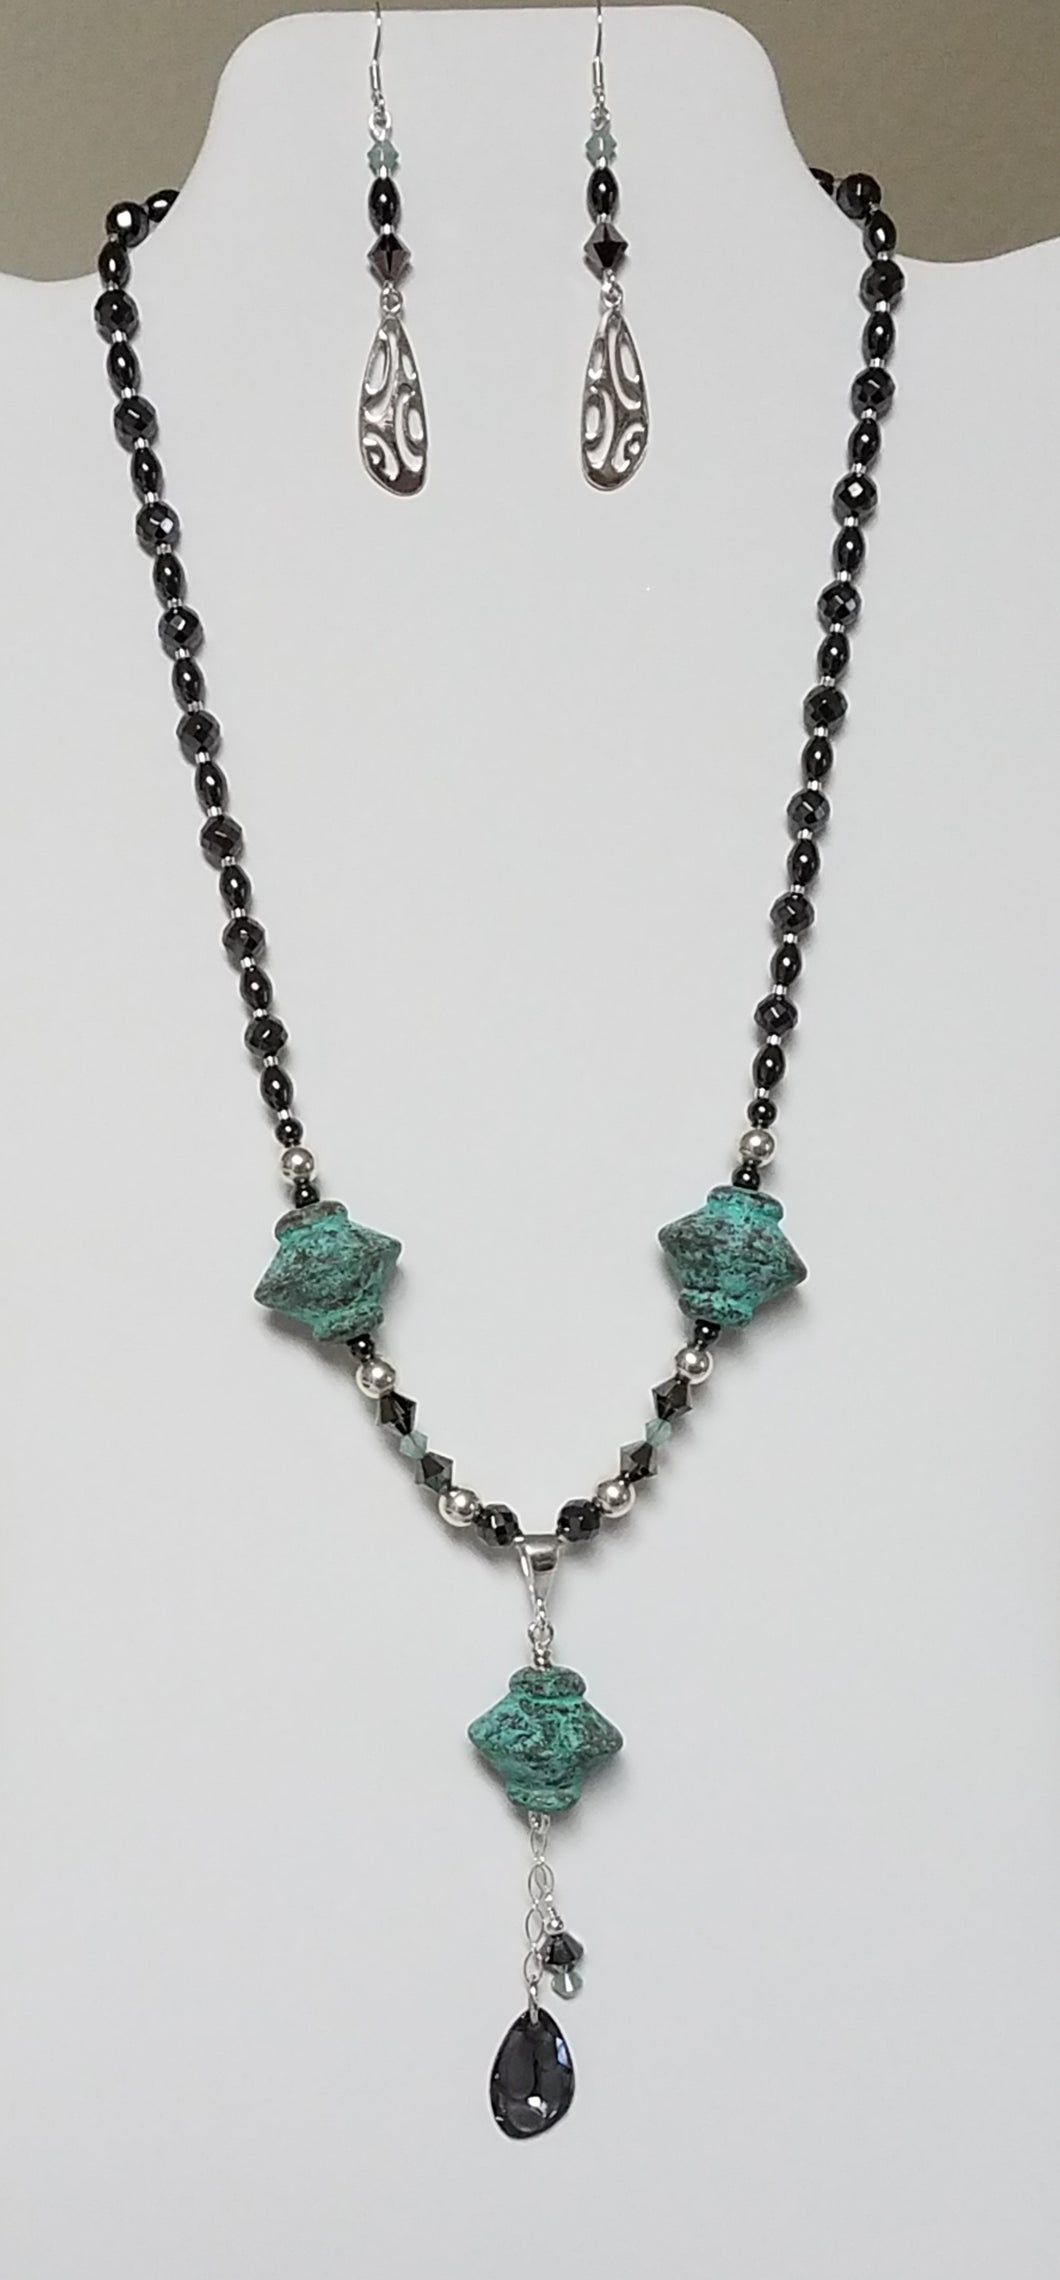 Antique Aqua Ceramic 'Tops' w/Crystal & Hematite Necklace & Earrings